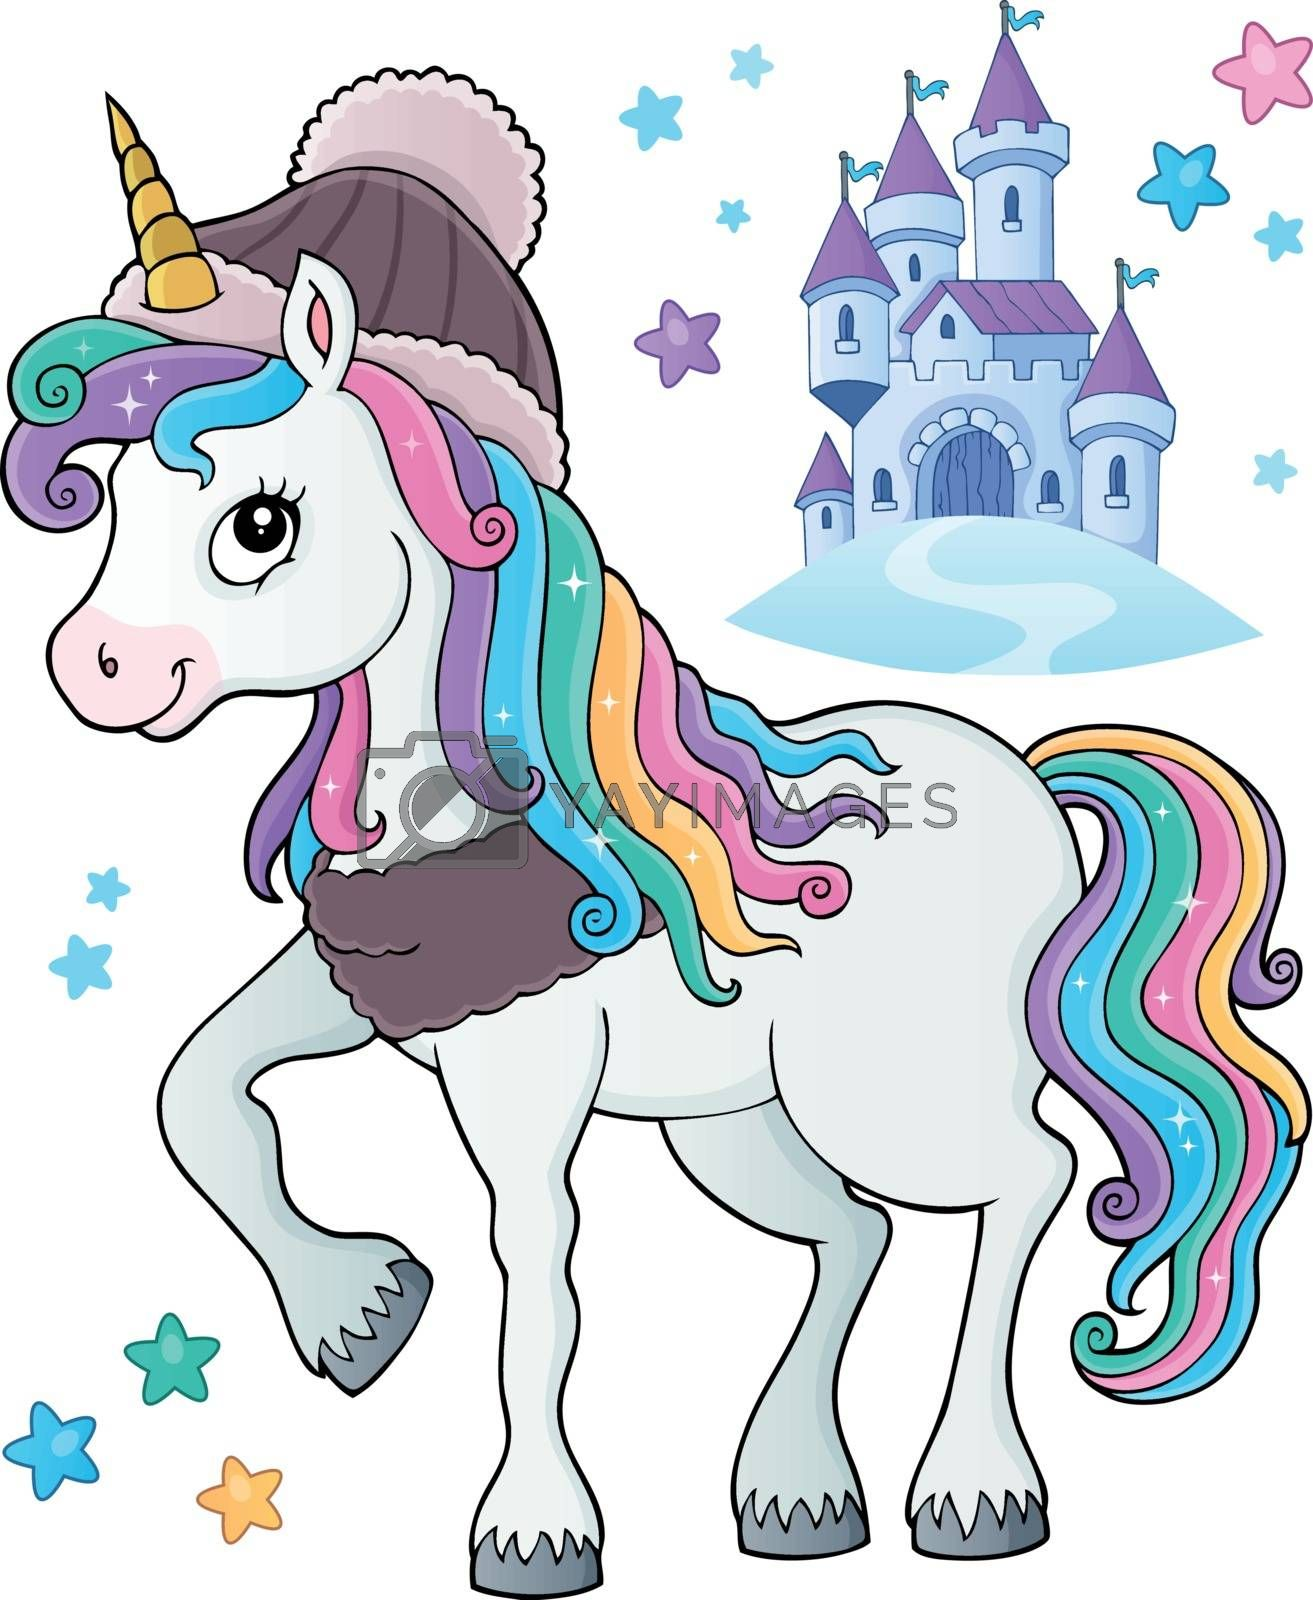 Winter unicorn theme image 1 - eps10 vector illustration.